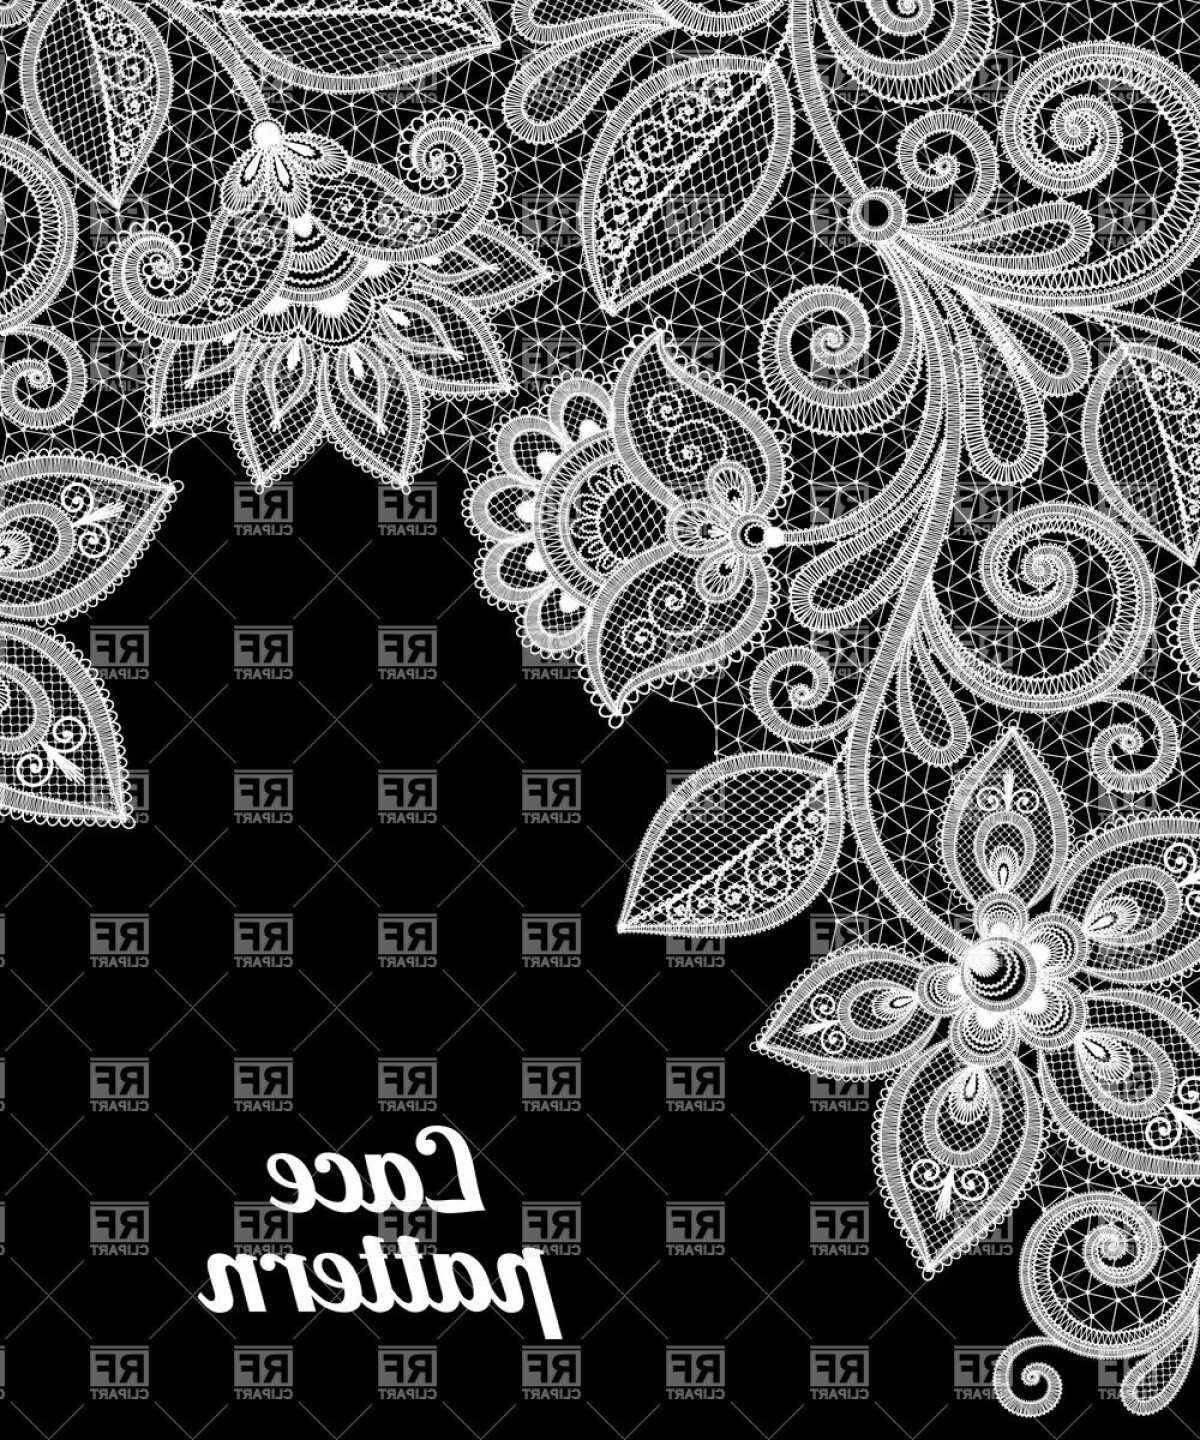 White Lace Vector: White Lace Floral Border On Black Background Vector Clipart